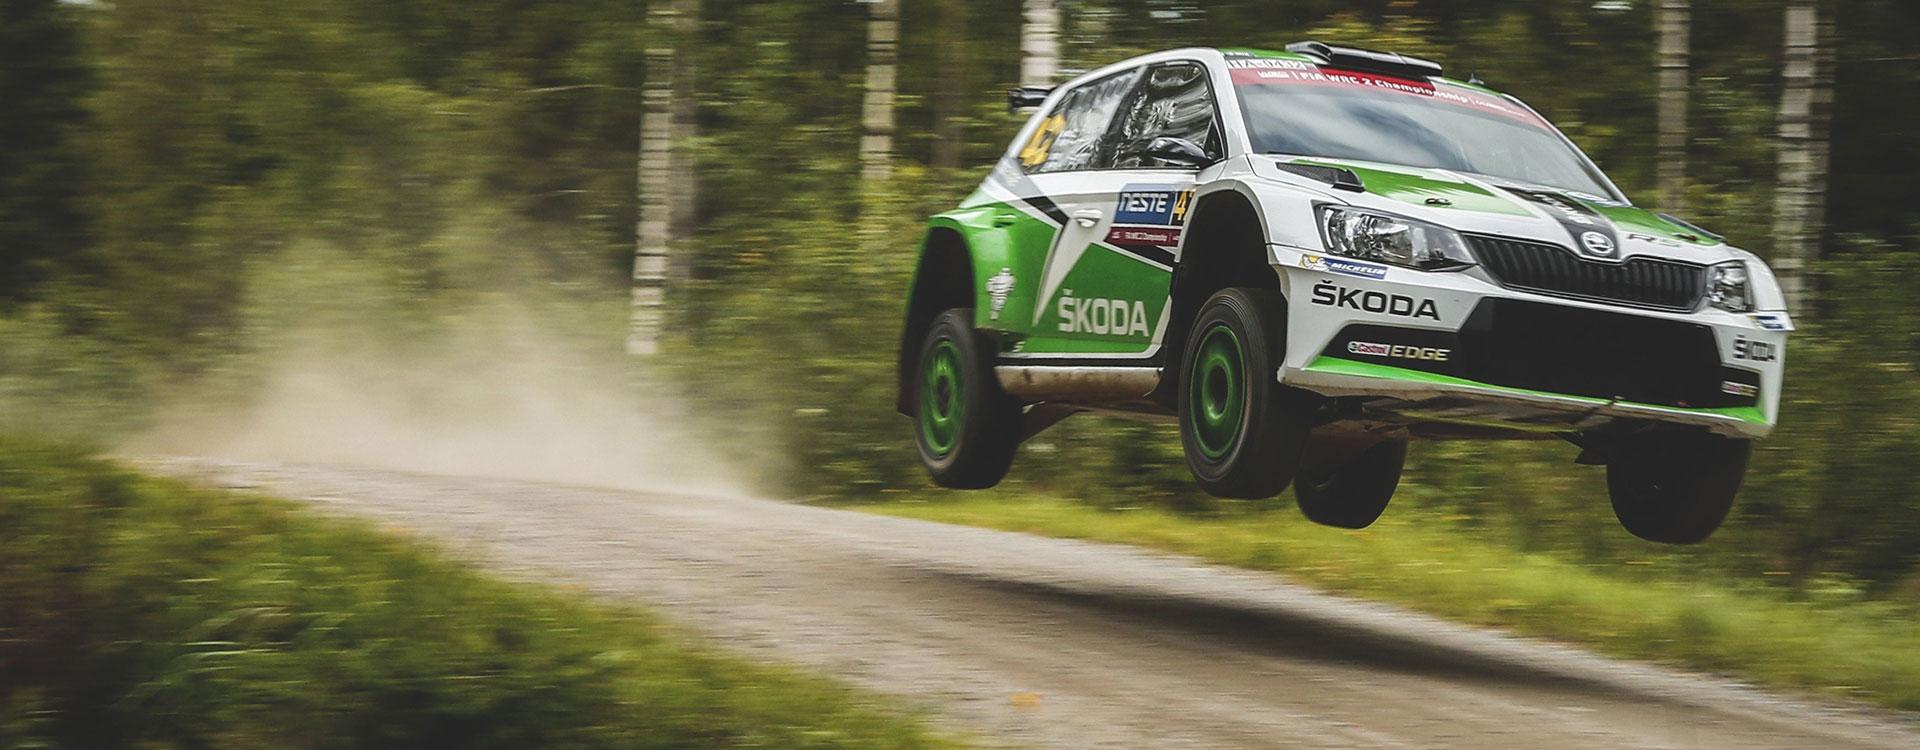 WRC Finland: Long jumps, high speed, just rally classic